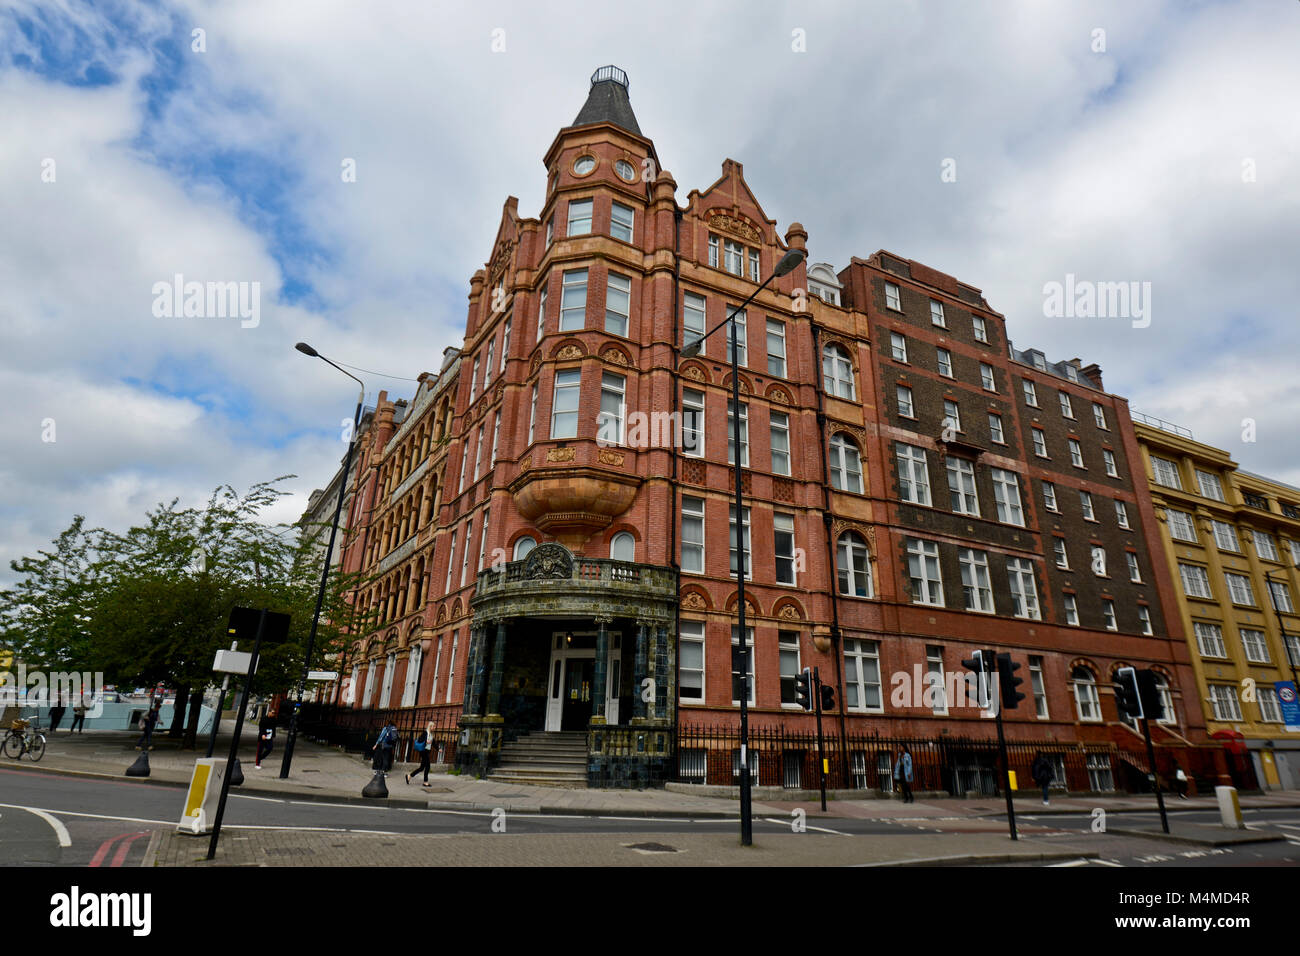 The Royal Waterloo Hospital for Children and Women, London - Stock Image